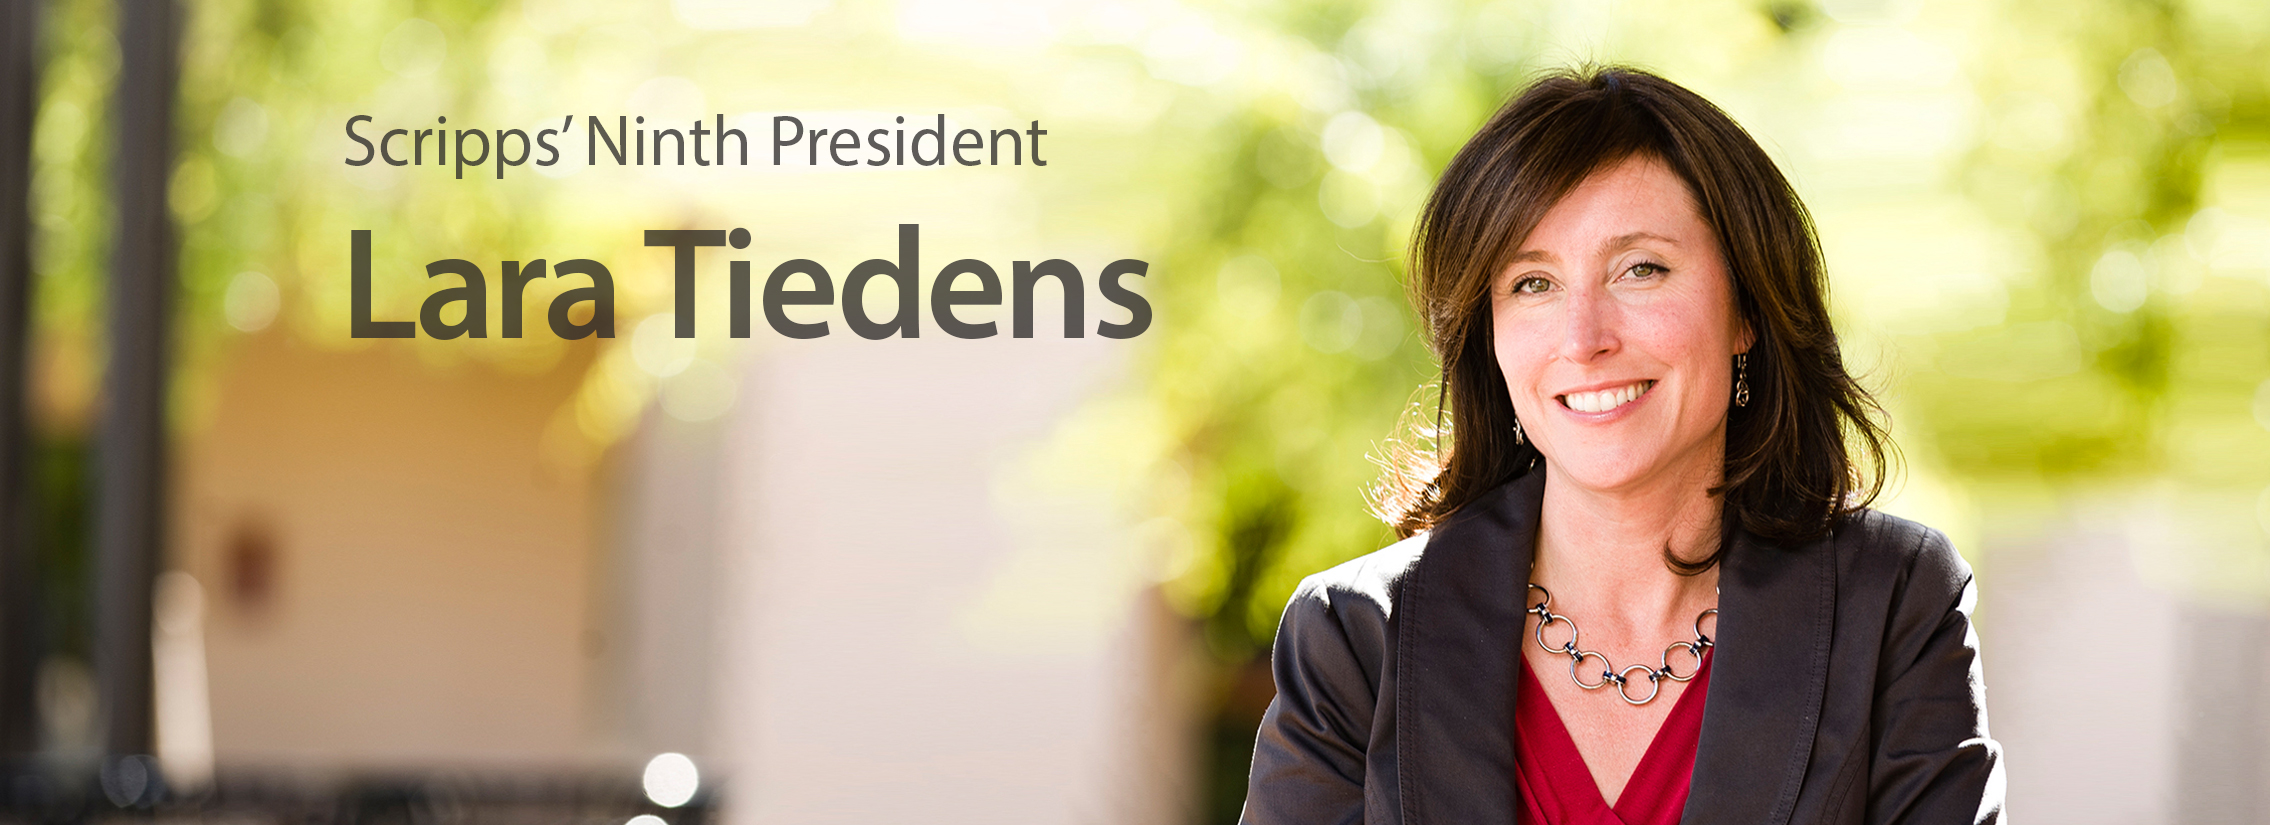 President Lara Tiedens Lara Tiedens began her tenure as president of Scripps College on August 1, 2016, assuming the title of the W.M. Keck Presidential Chair. President Tiedens has implemented initiatives to promote innovative pedagogy, ensure a holistic student experience, cultivate a diverse and inclusive community, and forge strategic partnerships to amplify Scripps' impact and […]